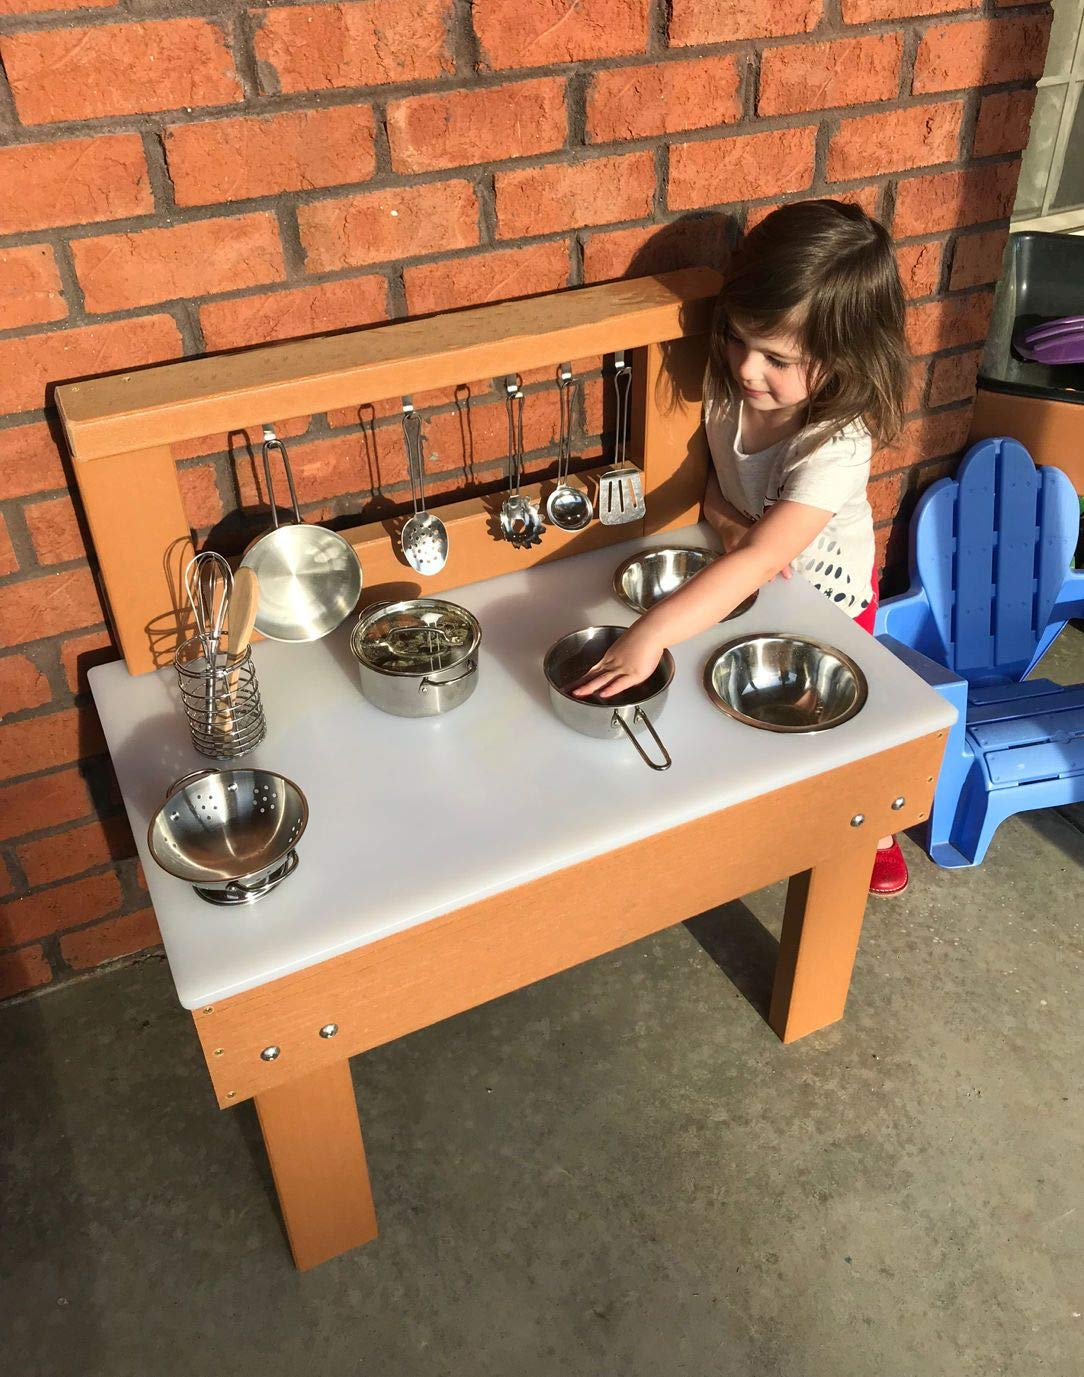 Kids' Station Indoor/Outdoor Toddler Kitchen by Kid's Station Outdoor (Image #1)